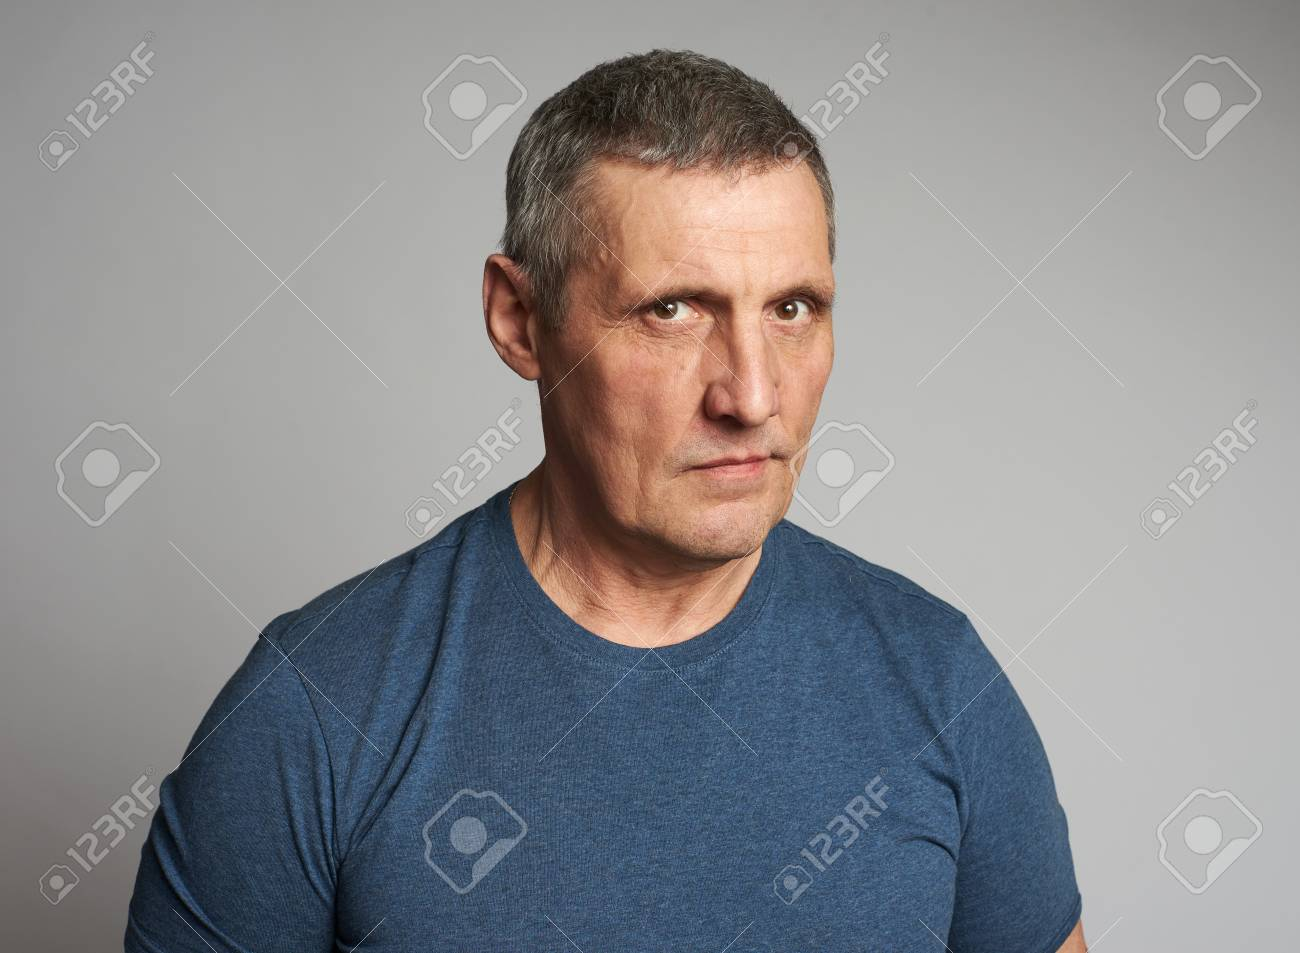 Senior man in blue t-shirt isolated on grey background - 121854999